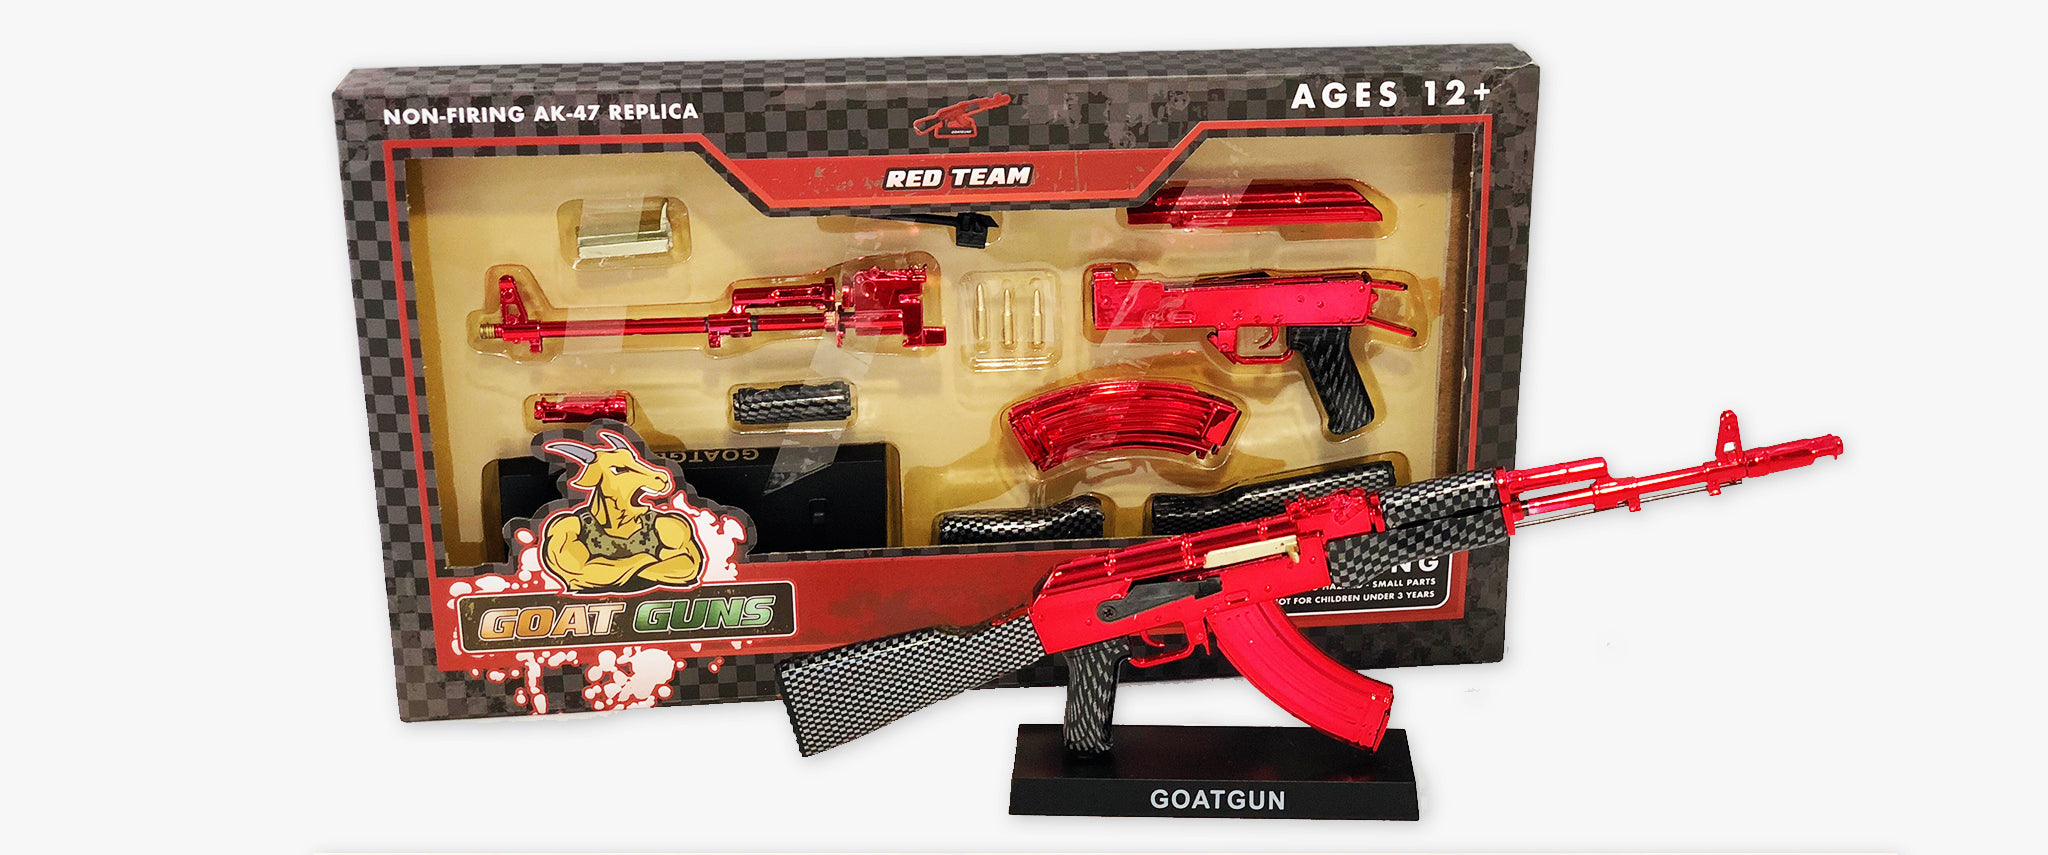 REDTEAM goatgun with box